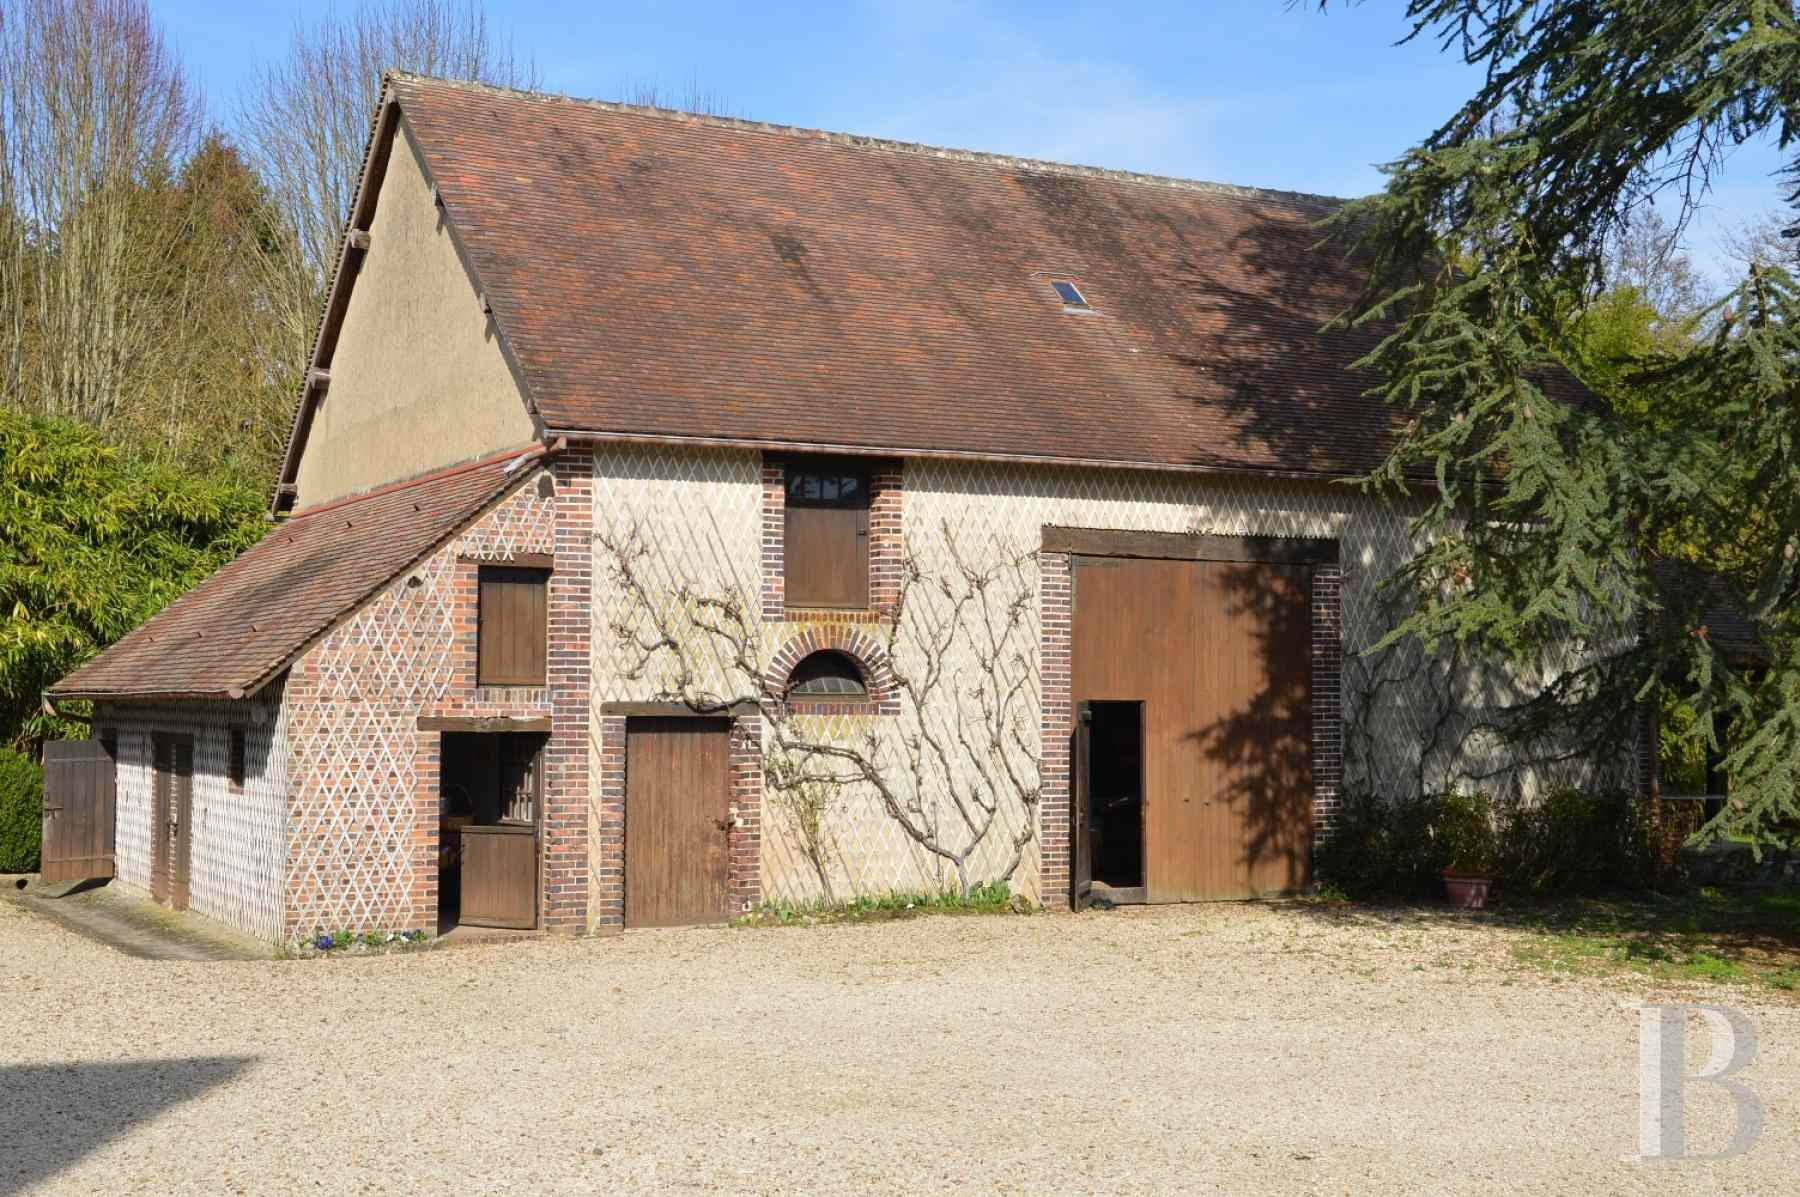 character properties France center val de loire farm building - 14 zoom